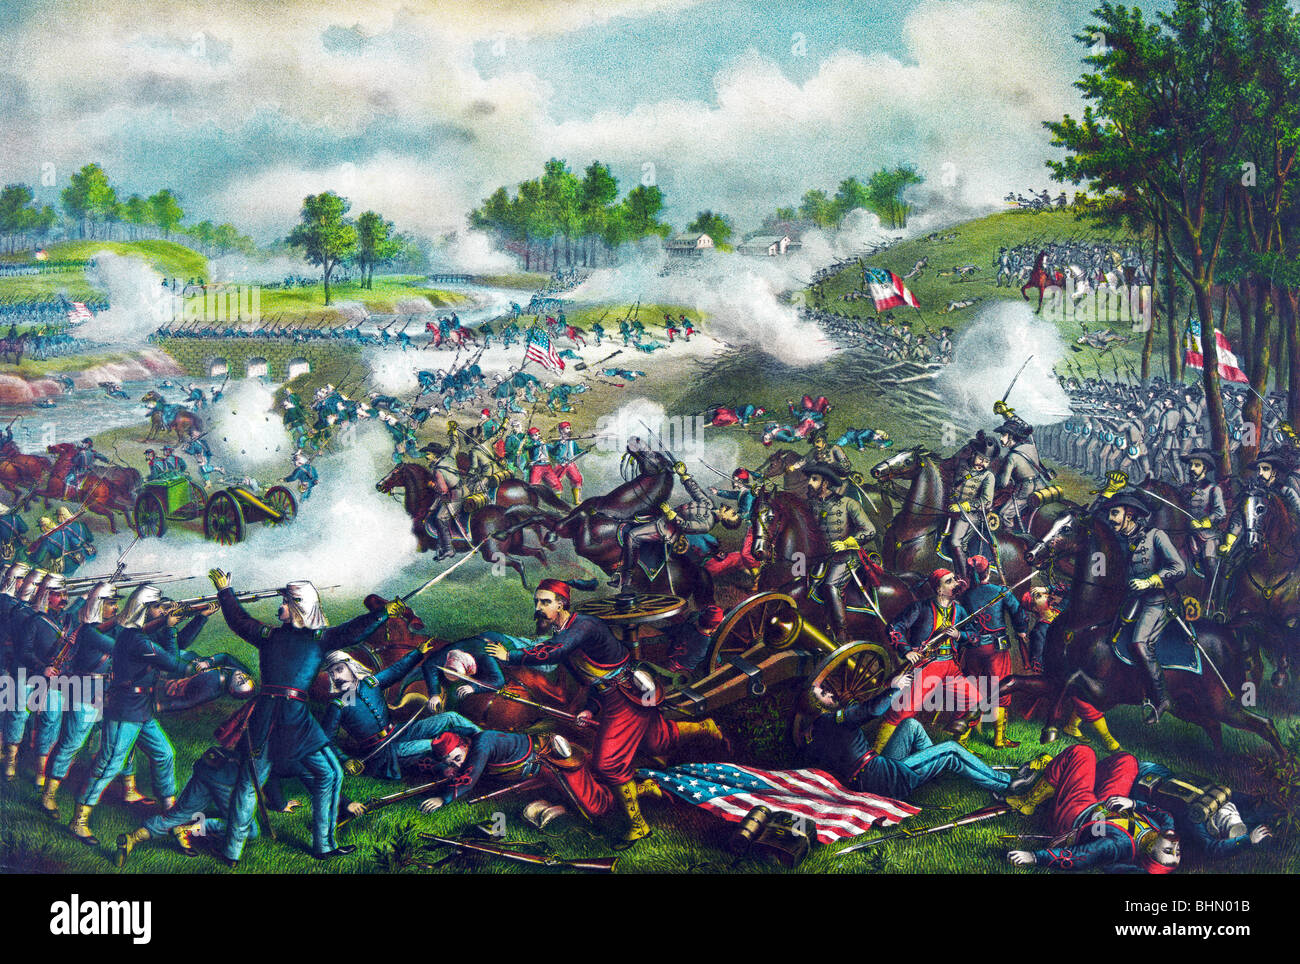 Print c1889 depicting the First Battle of Bull Run (July 21 1861) during the American Civil War. - Stock Image